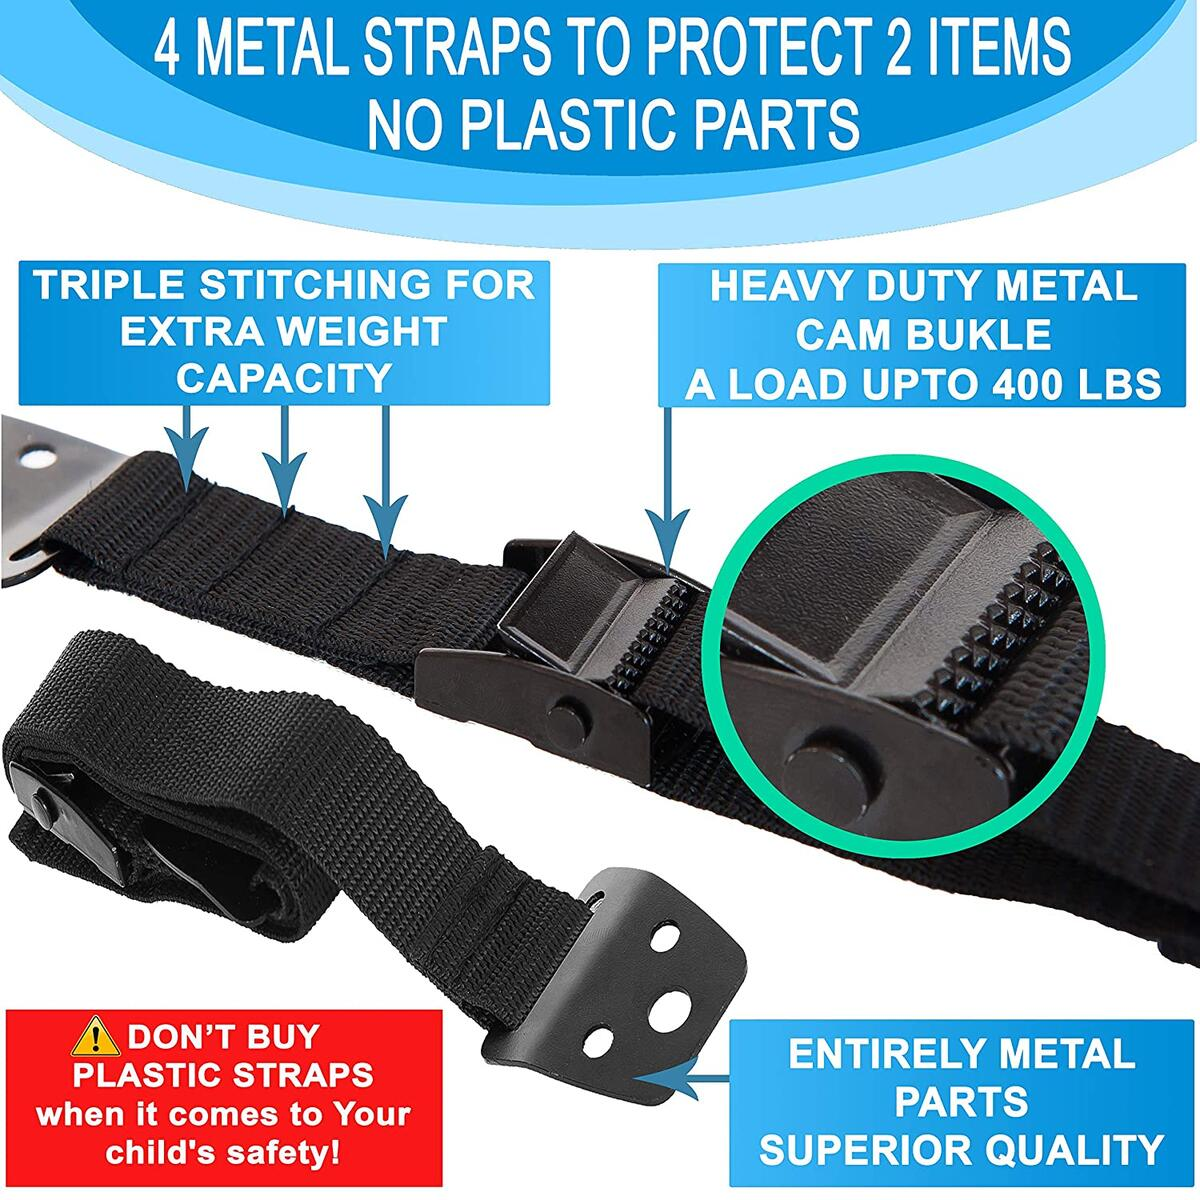 METAL Baby Proofing Furniture and TV Safety Straps, Eartquake Straps, 4 PACK + FREE GIFT